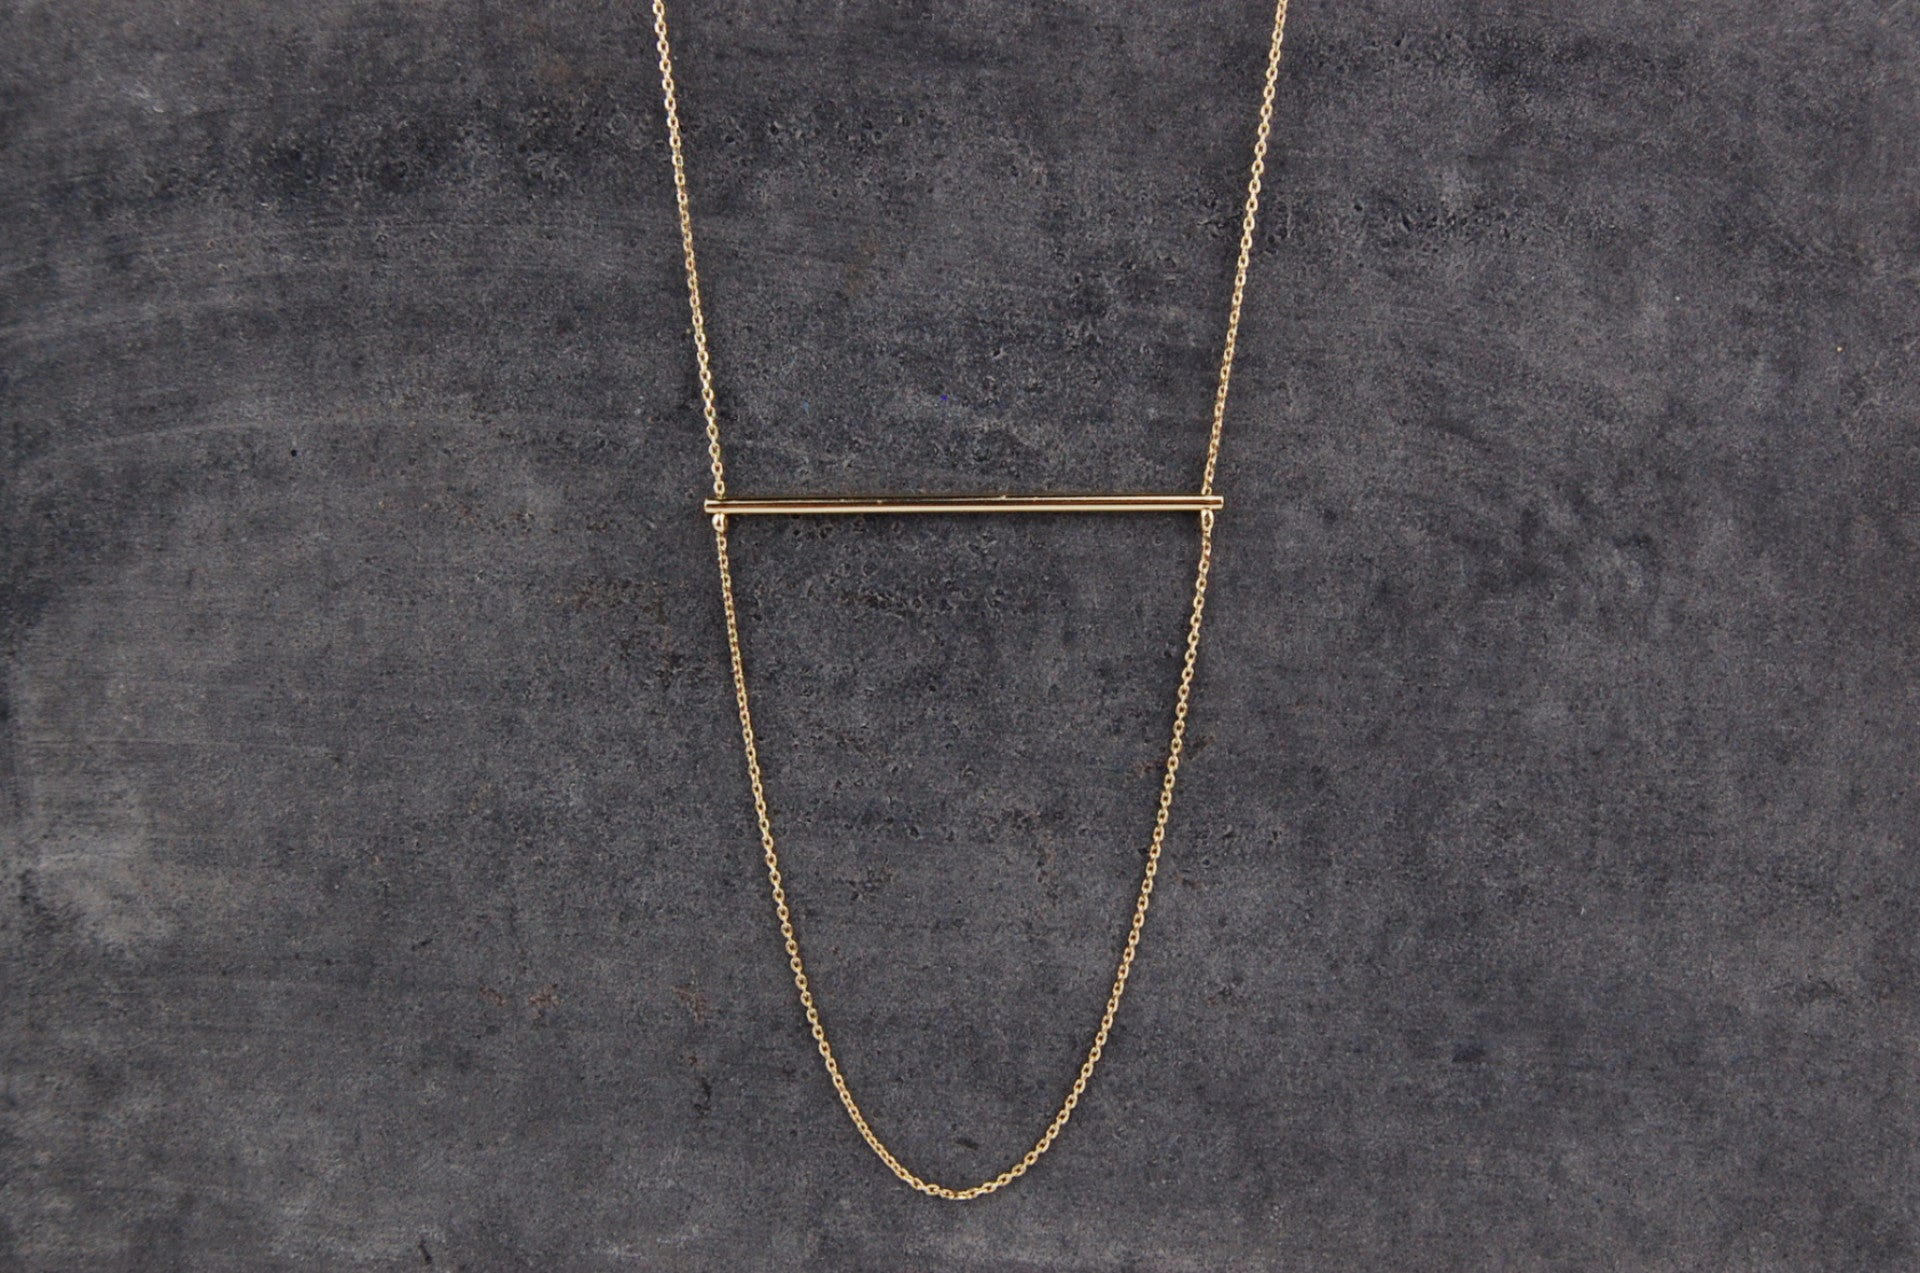 horizontal bar necklace | 24k gold-plated